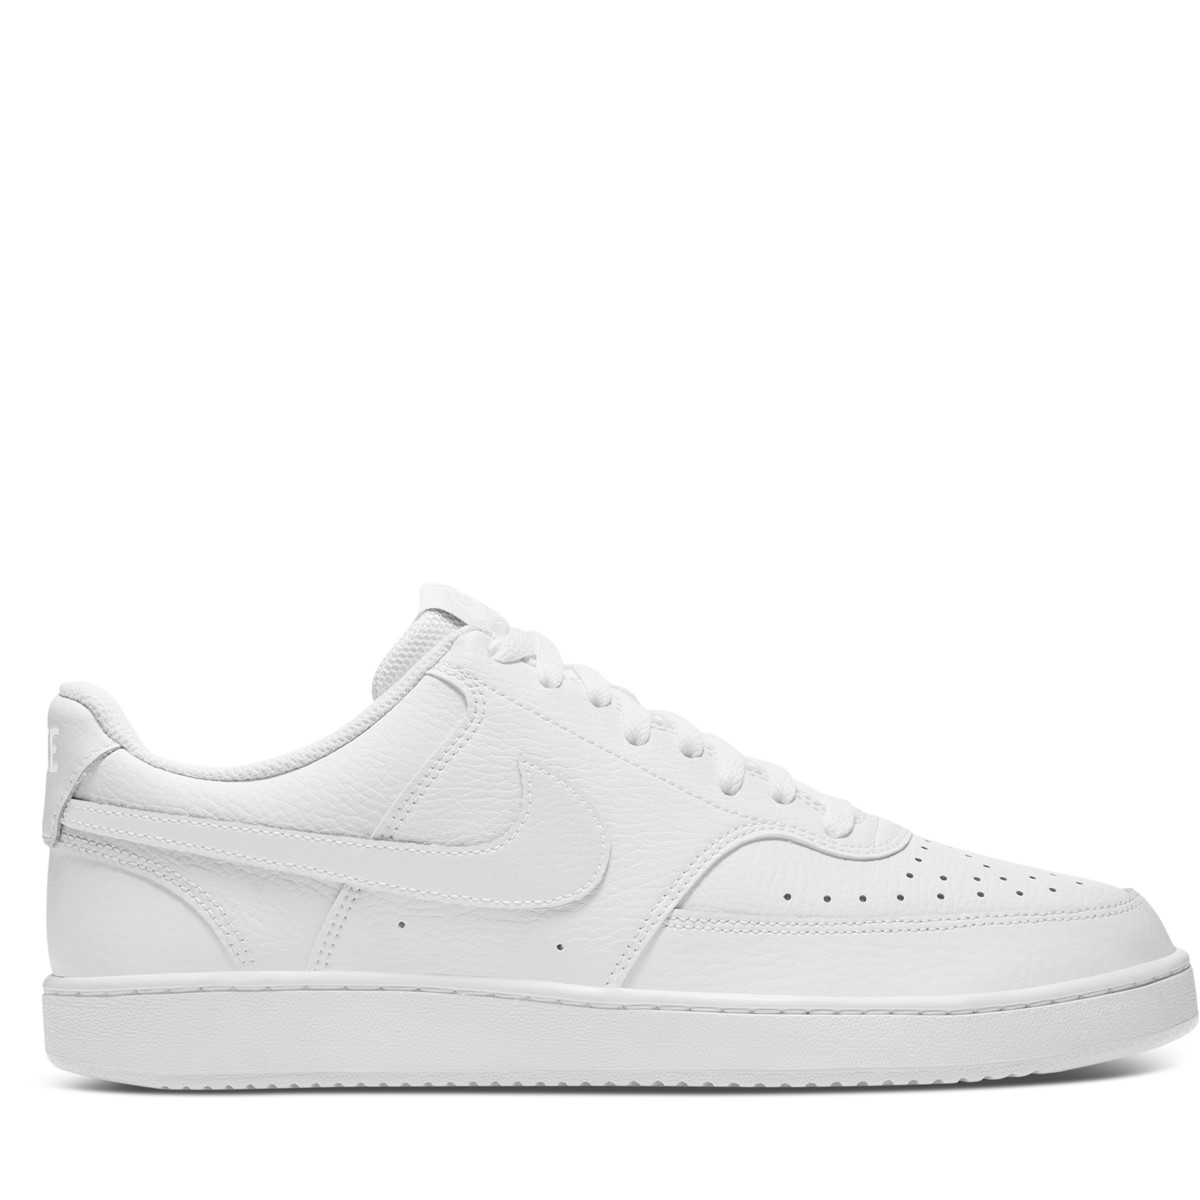 Men's Court Vision Low Sneakers in White